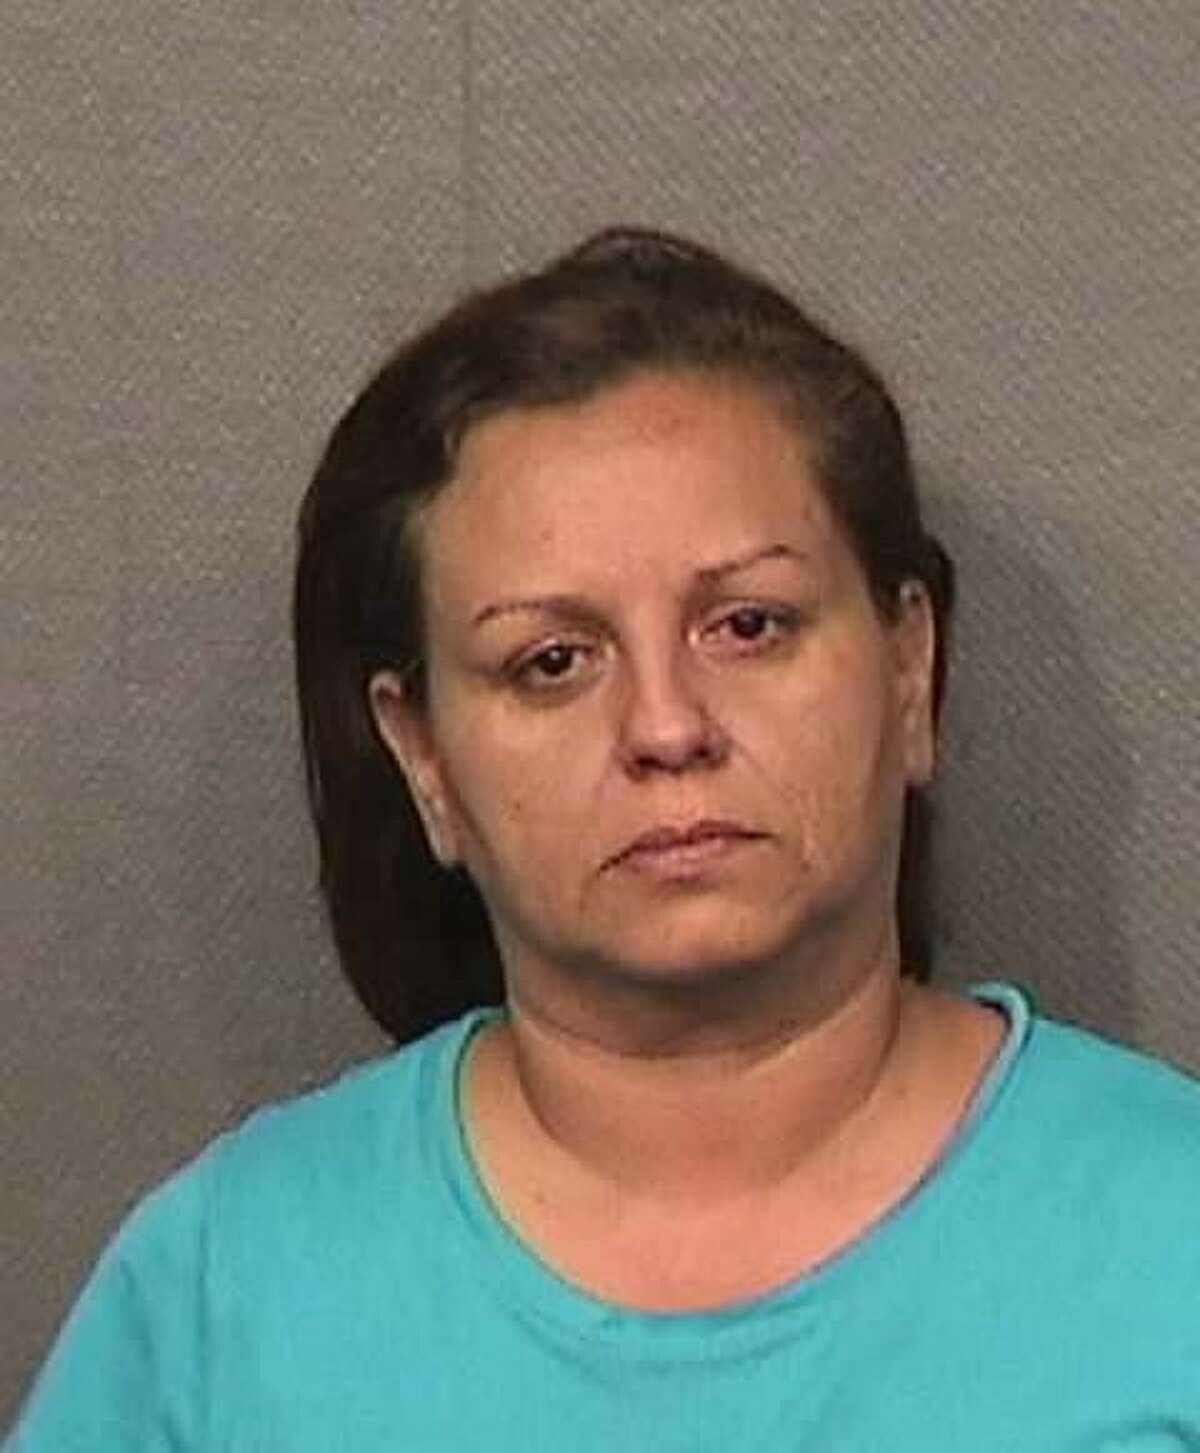 Elvia L. Coronado, of Houston, is charged with intoxicated assault in a fatal traffic crash about 7:50 p.m. March 22, 2016, in the 8900 block of Almeda Road.